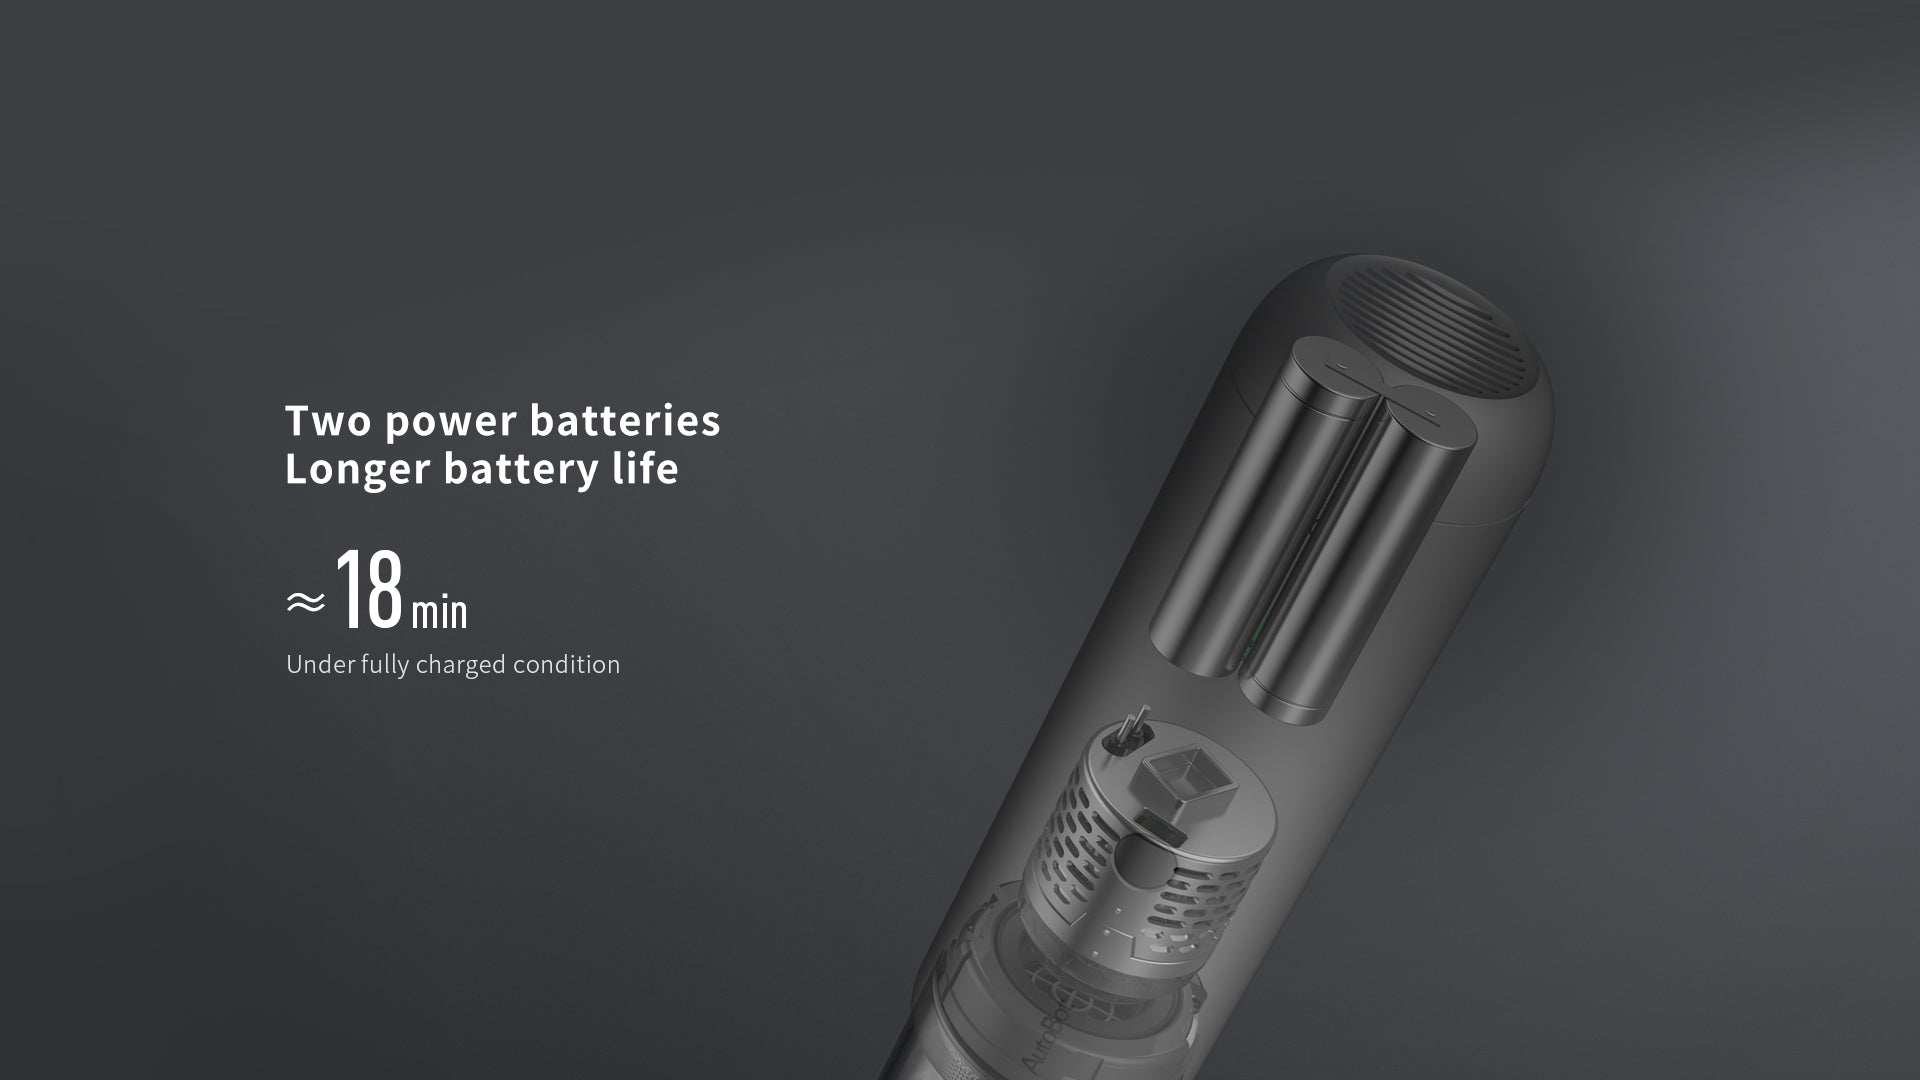 Two power batteries long battery life 18min